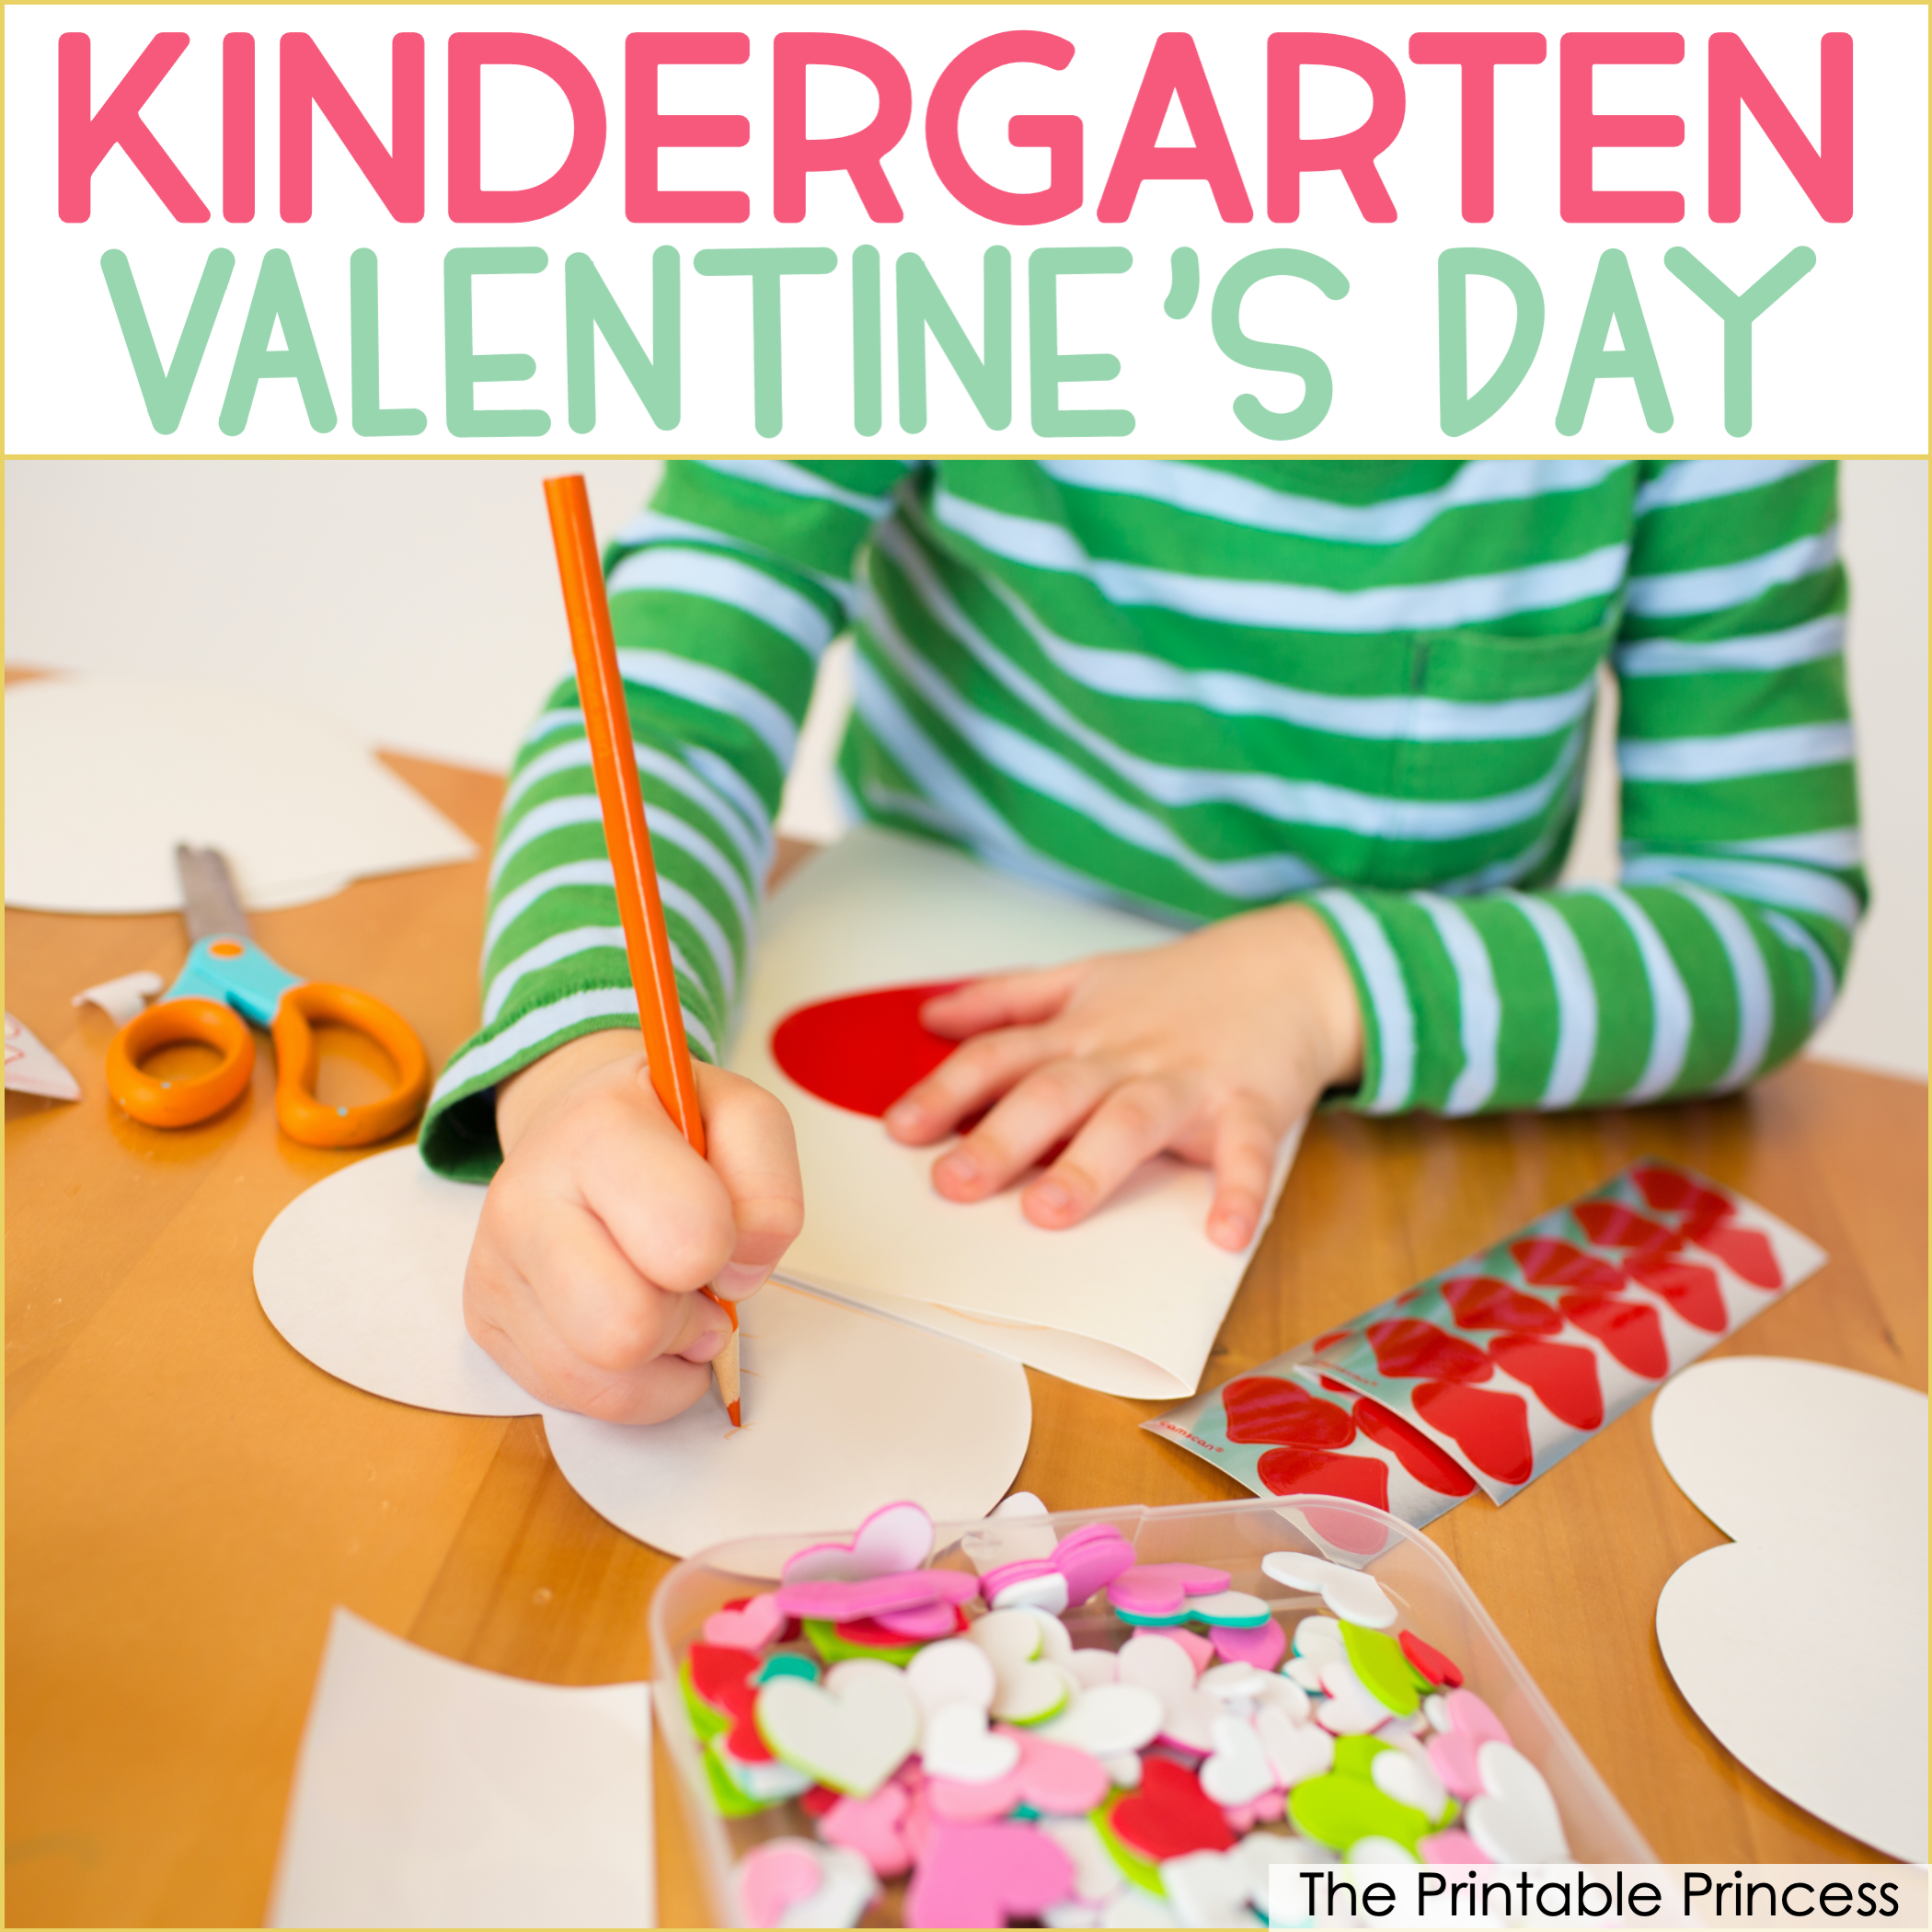 8 Valentine's Day Ideas for Kindergarten